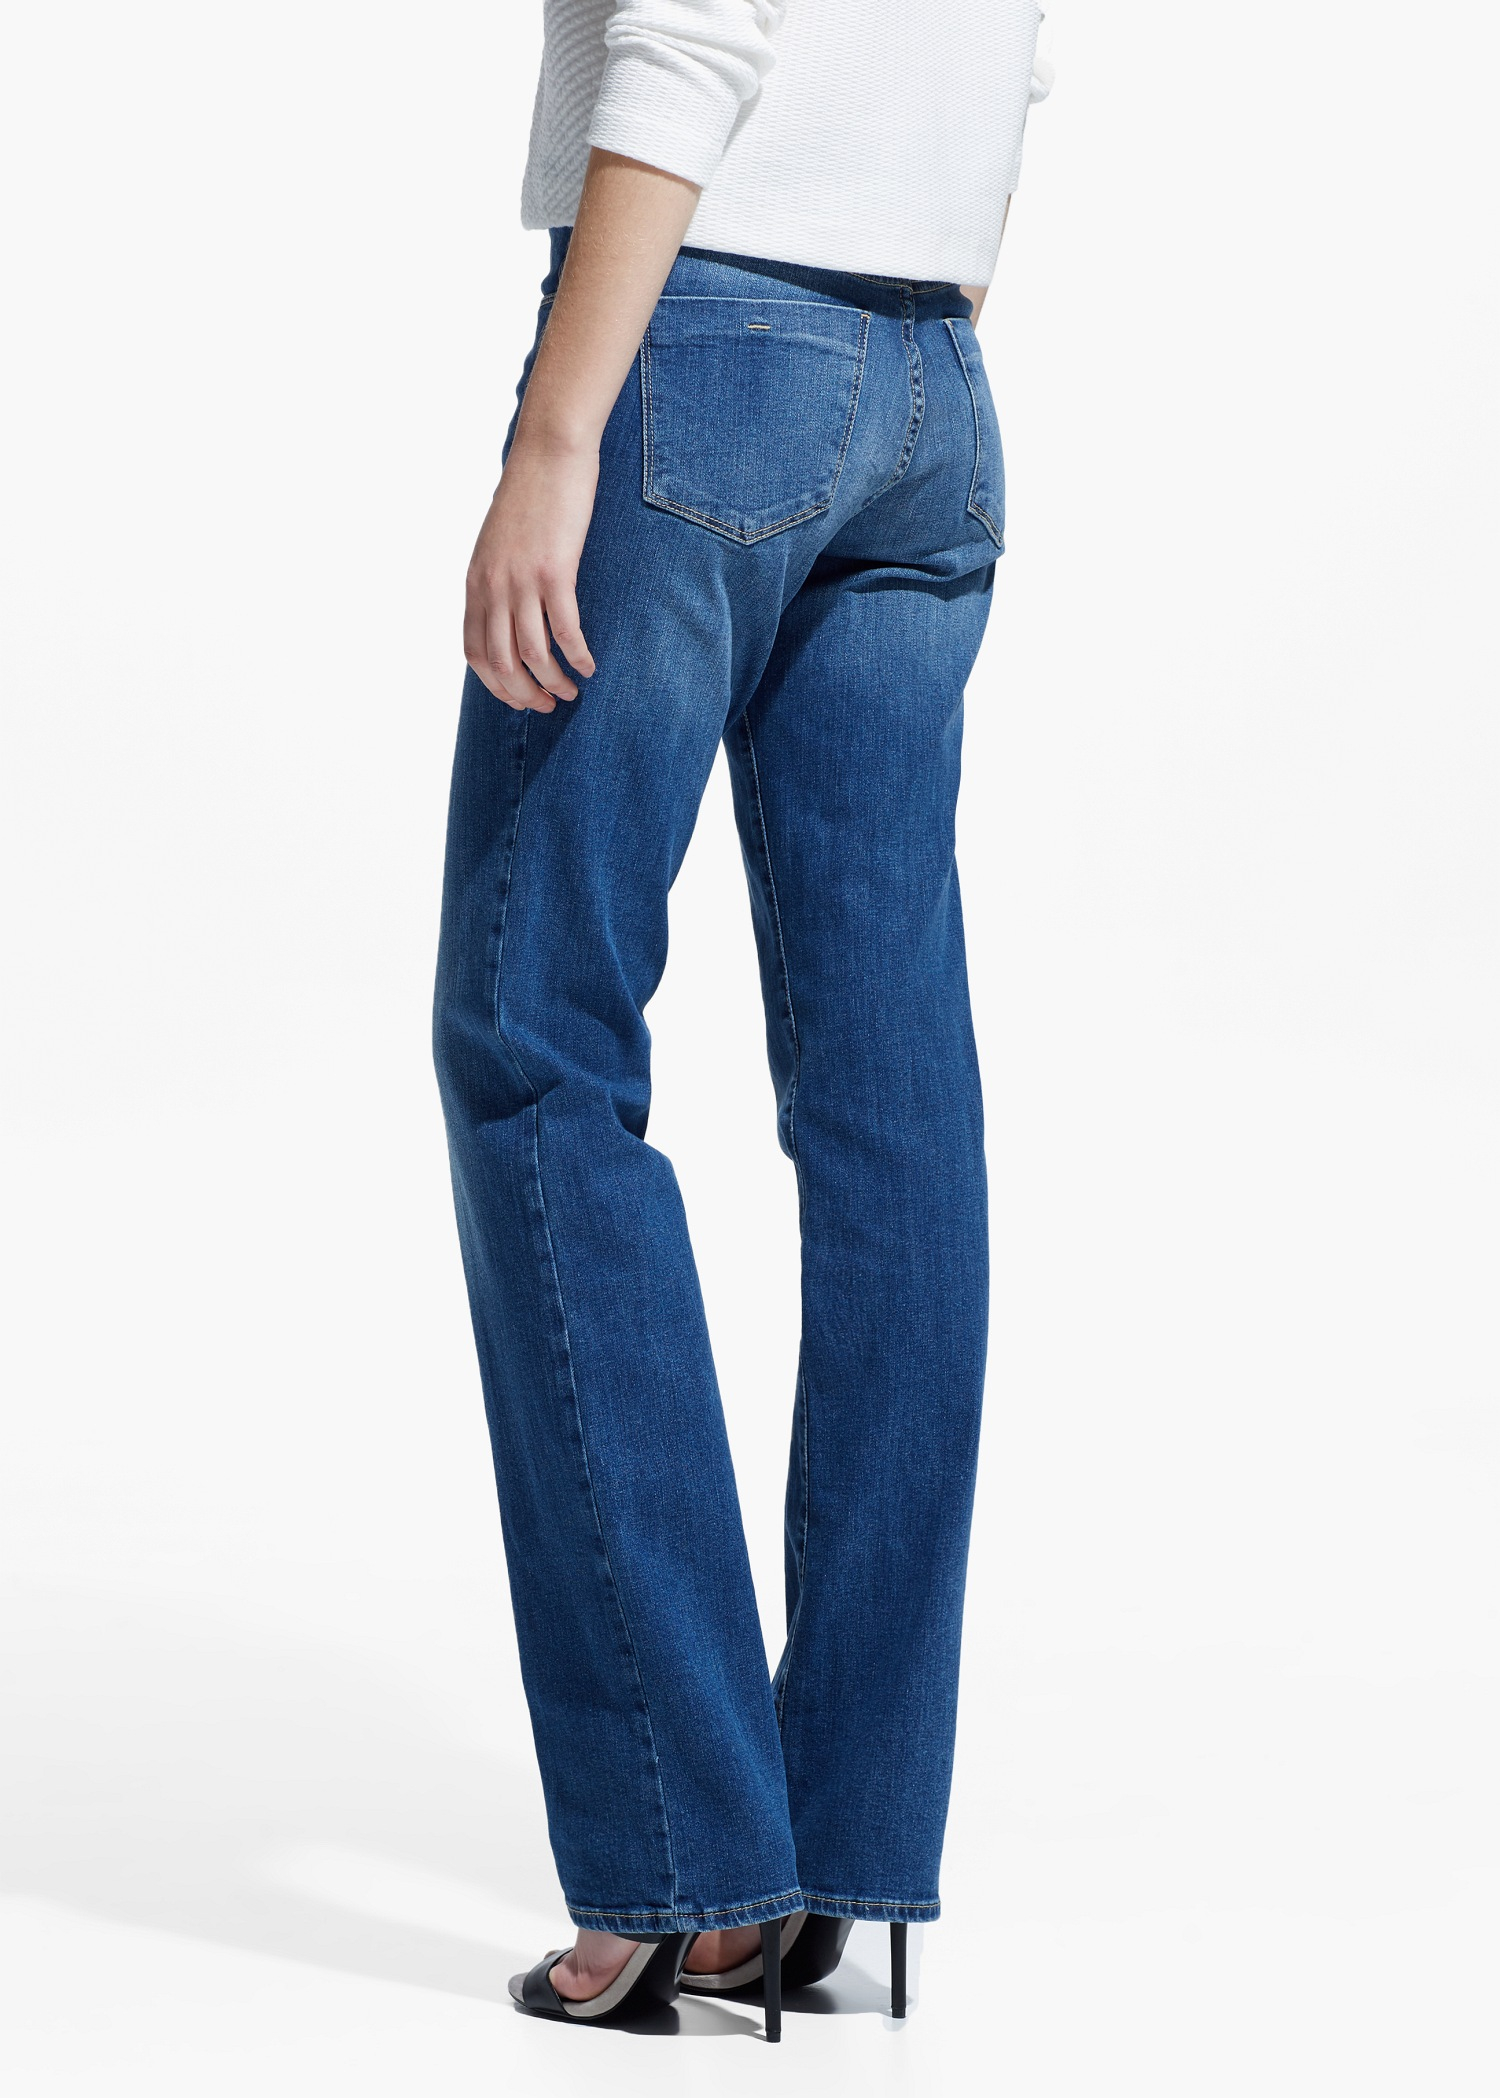 4b2543115a Gallery. Women s Dl1961 Florence Women s Olive Jeans ...